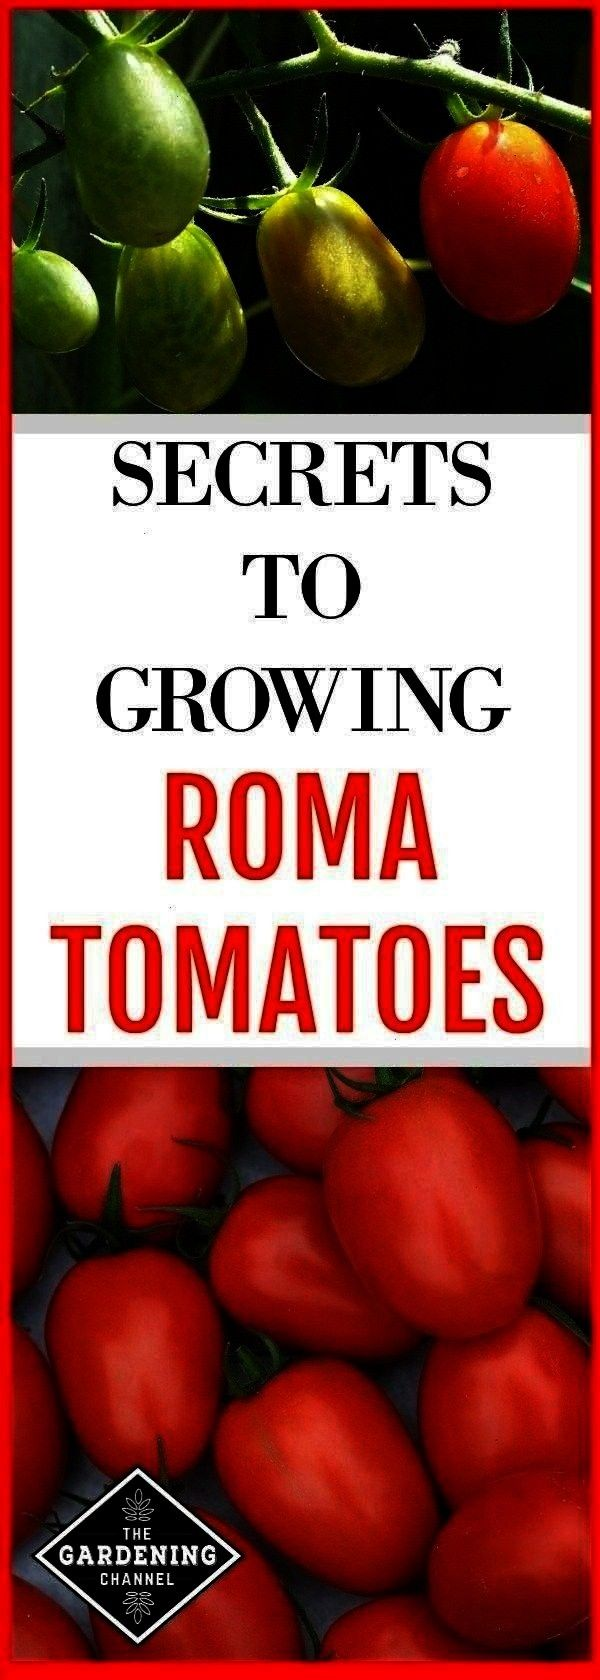 garden and roma tomato harvest with text overlay secrets to growing roma tomatoesroma tomatoes growing in the garden and roma tomato harvest with text overlay secrets to...